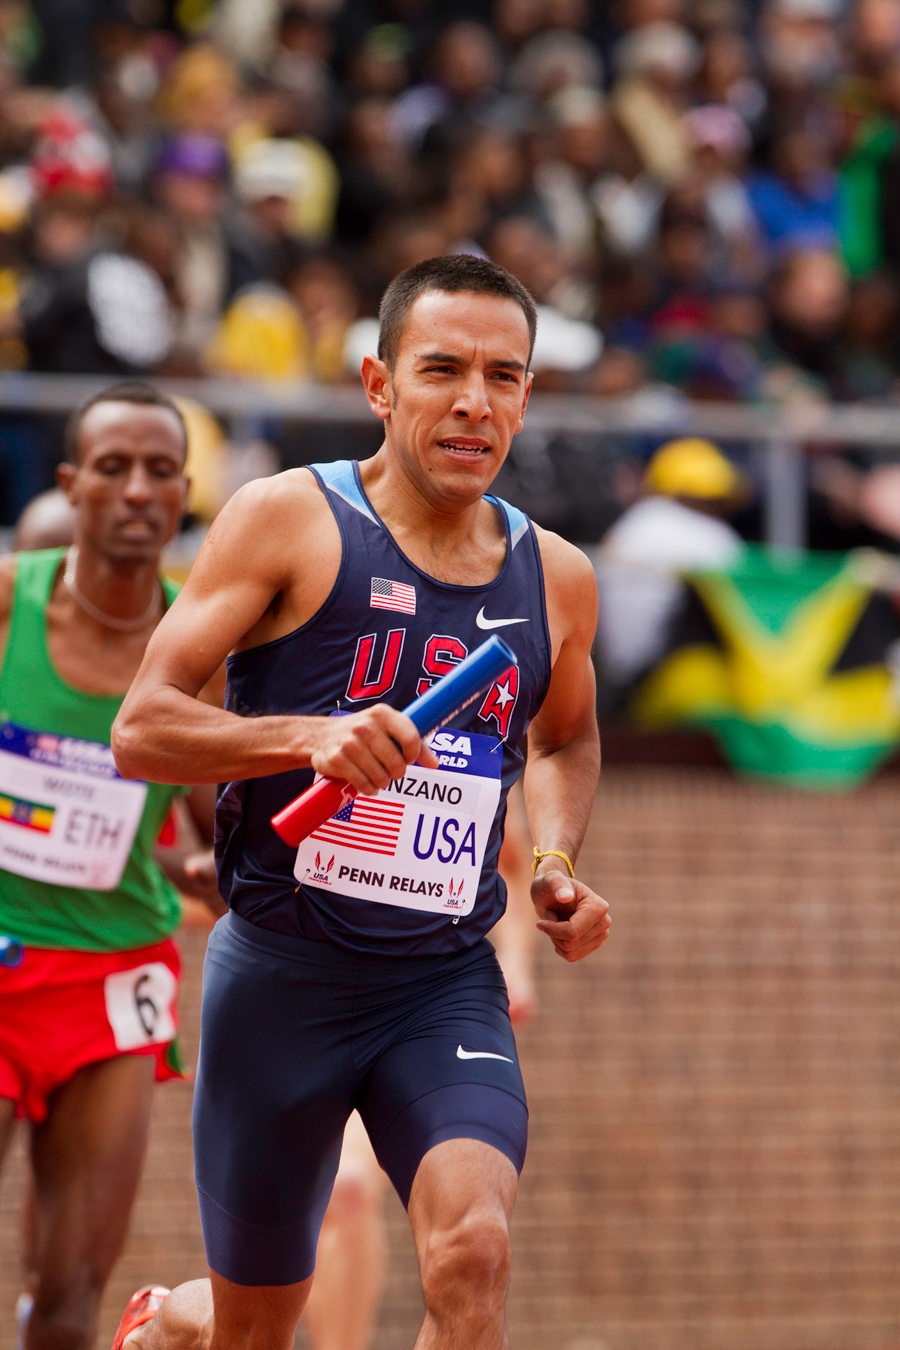 Leo Manzano anchors the USA Blue team in the USA vs. the world DMR at the 2012 Penn Relays.